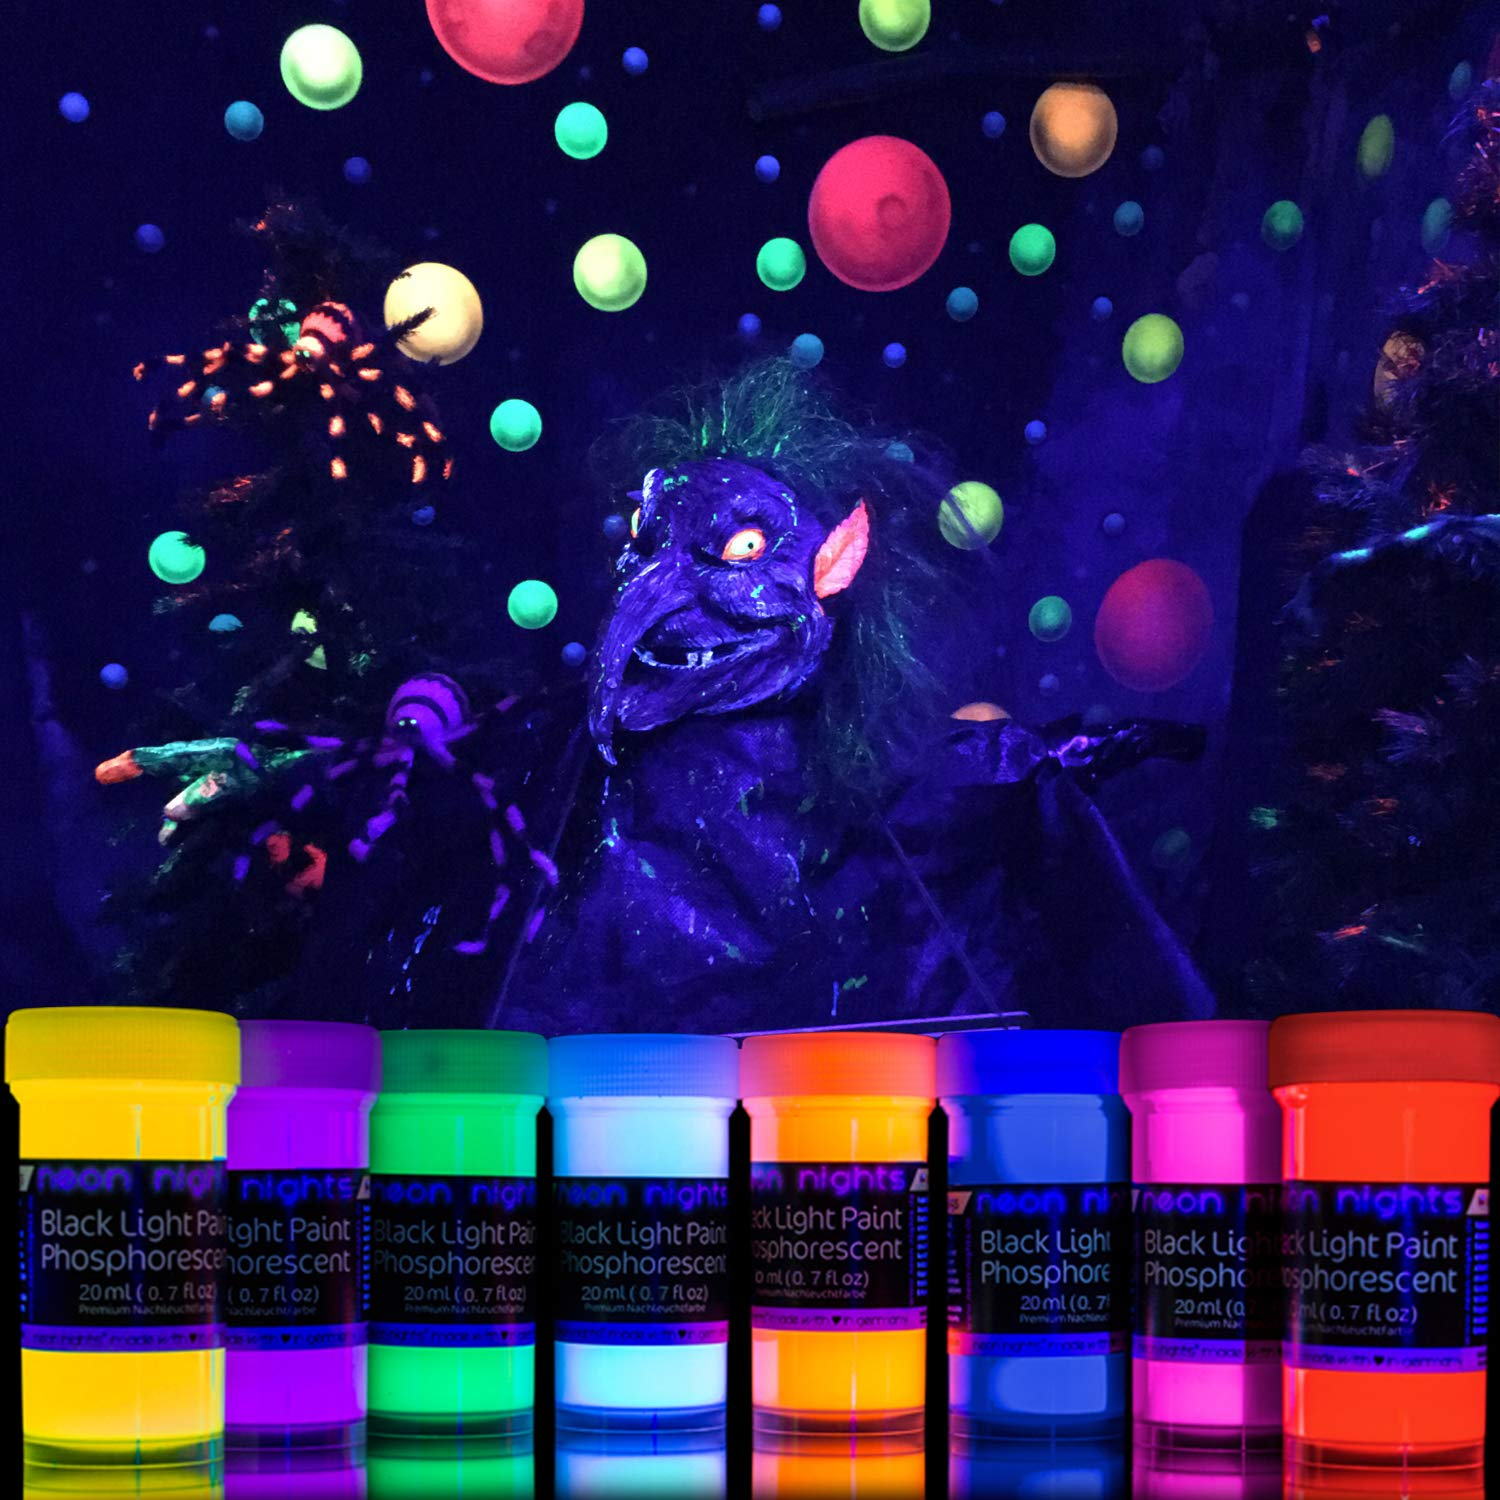 Wondrous 2 In 1 Glow In The Dark Paint Neon Glow Paint Set With Uv Black Light Reflective Wall Paint 8 Color Kit High Pigmentation German Quality Download Free Architecture Designs Scobabritishbridgeorg